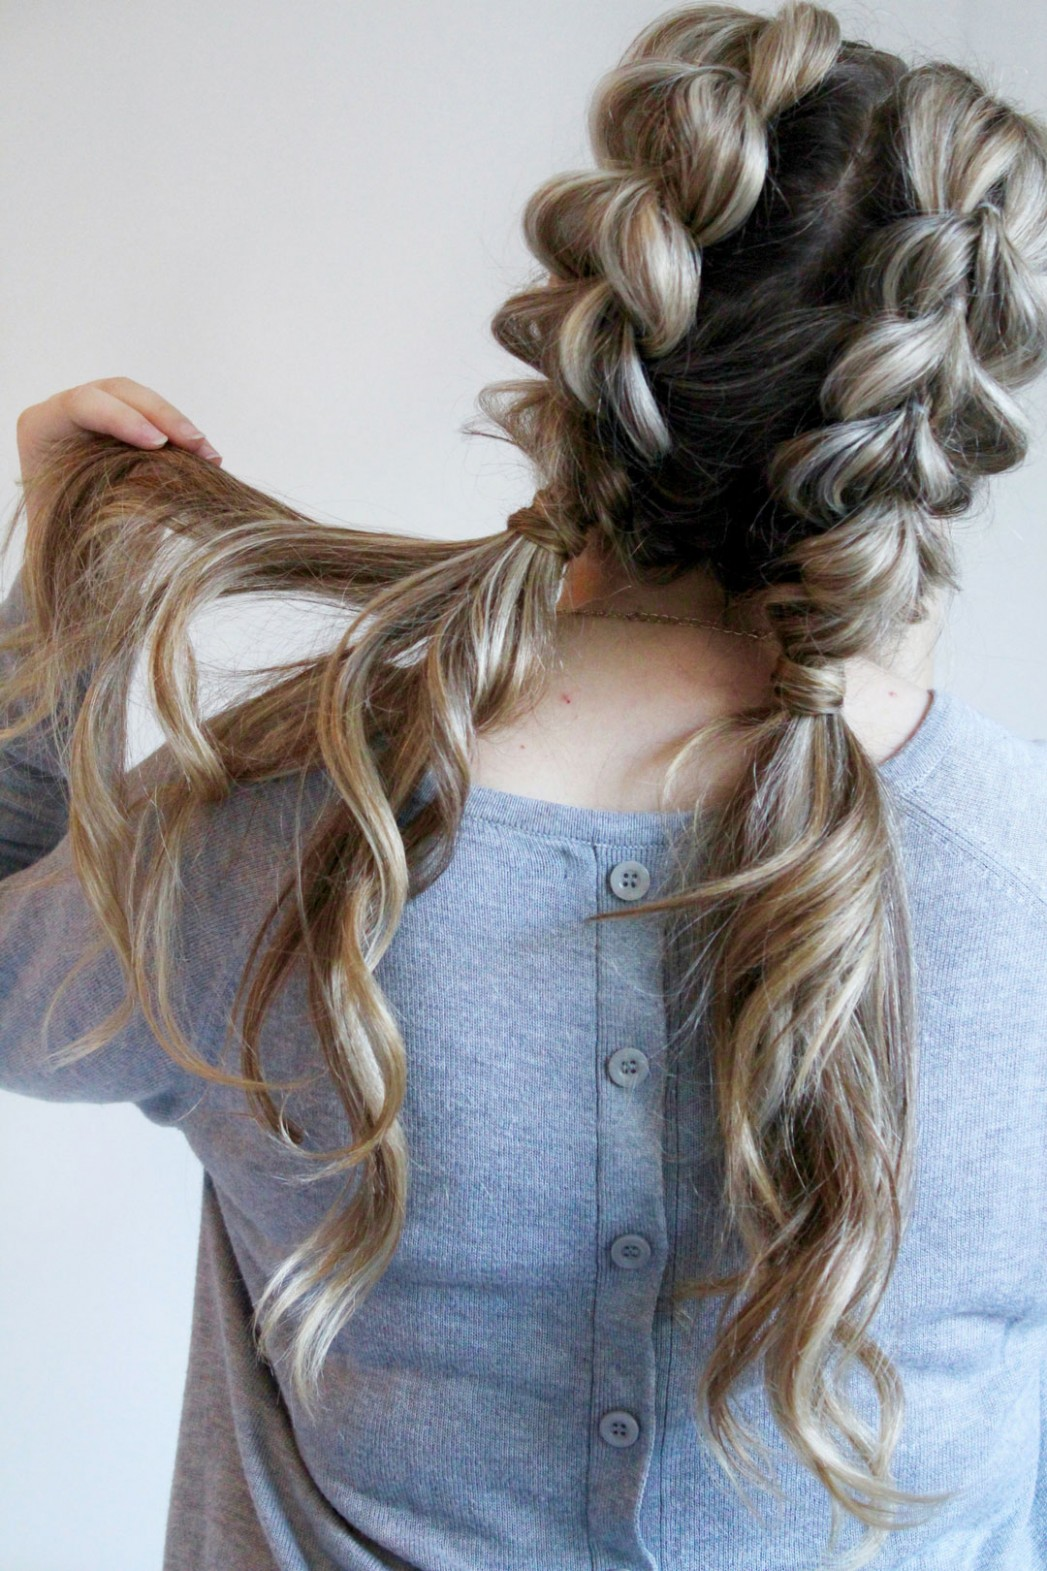 10 Easy And Cute Hairstyles For Curly Hair Southern Living Easy Hairstyles For Curly Frizzy Hair